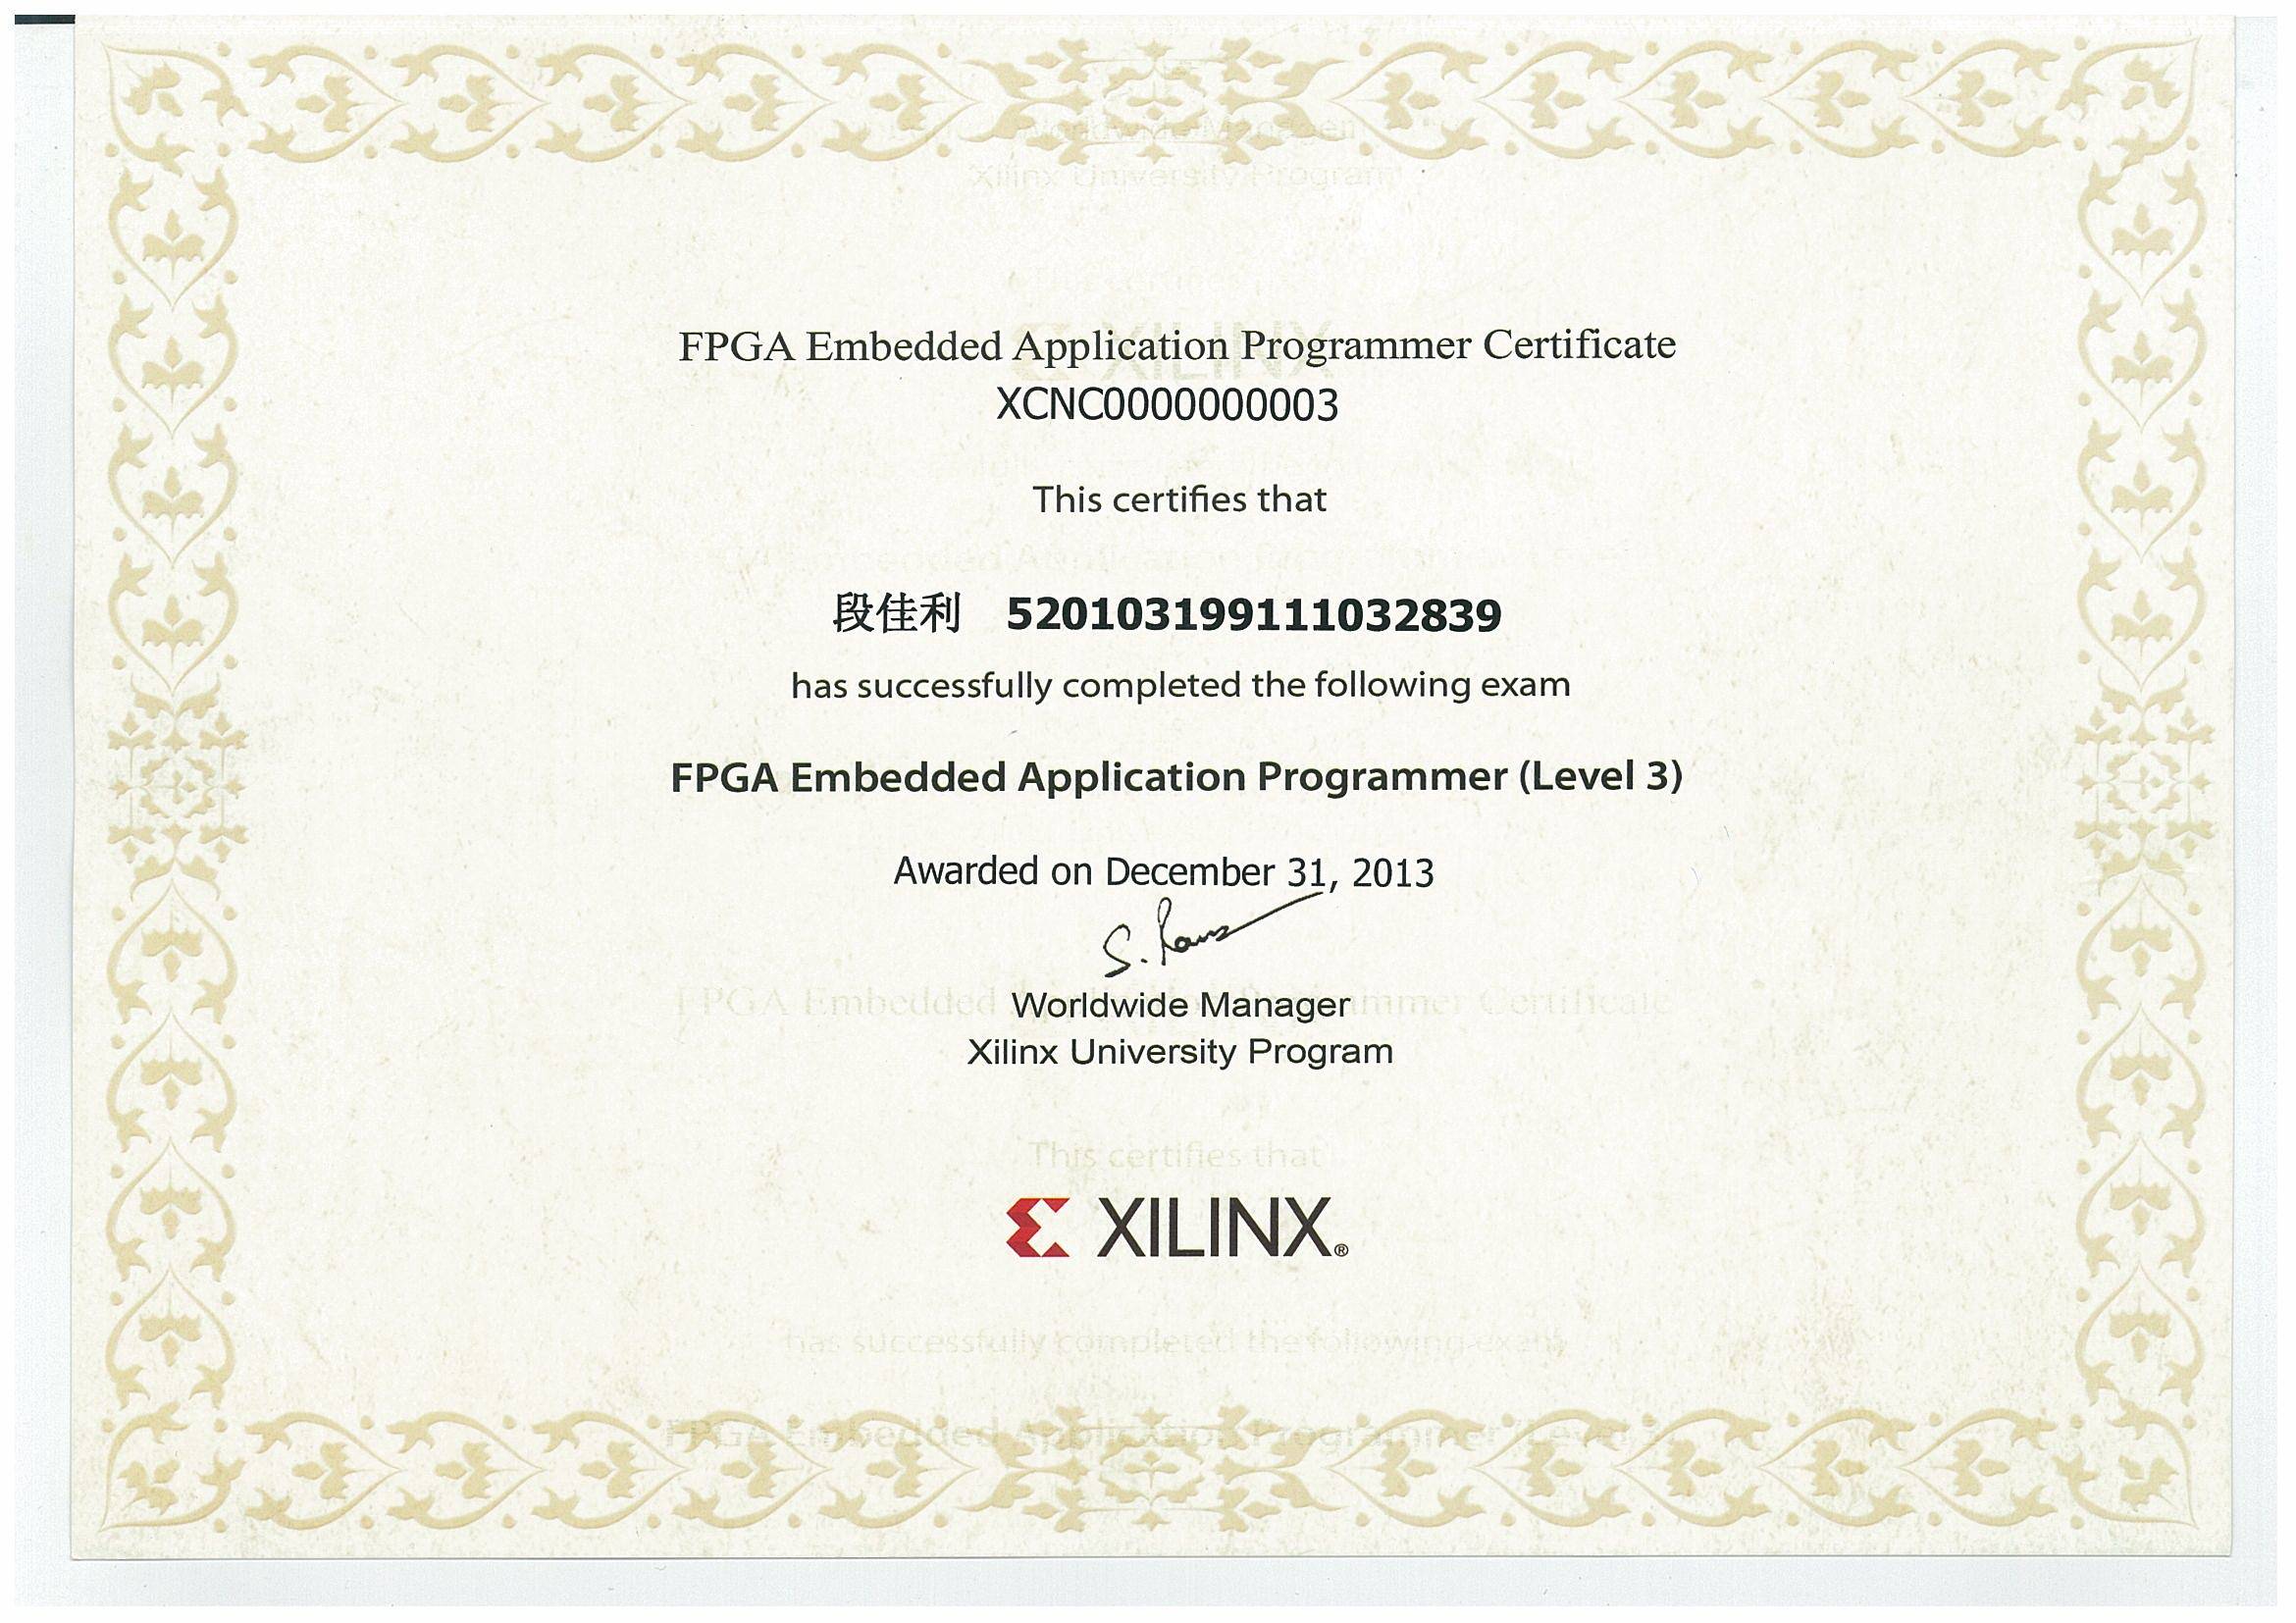 Jiali duans blog fpga embedded application programmer certificate 1betcityfo Image collections